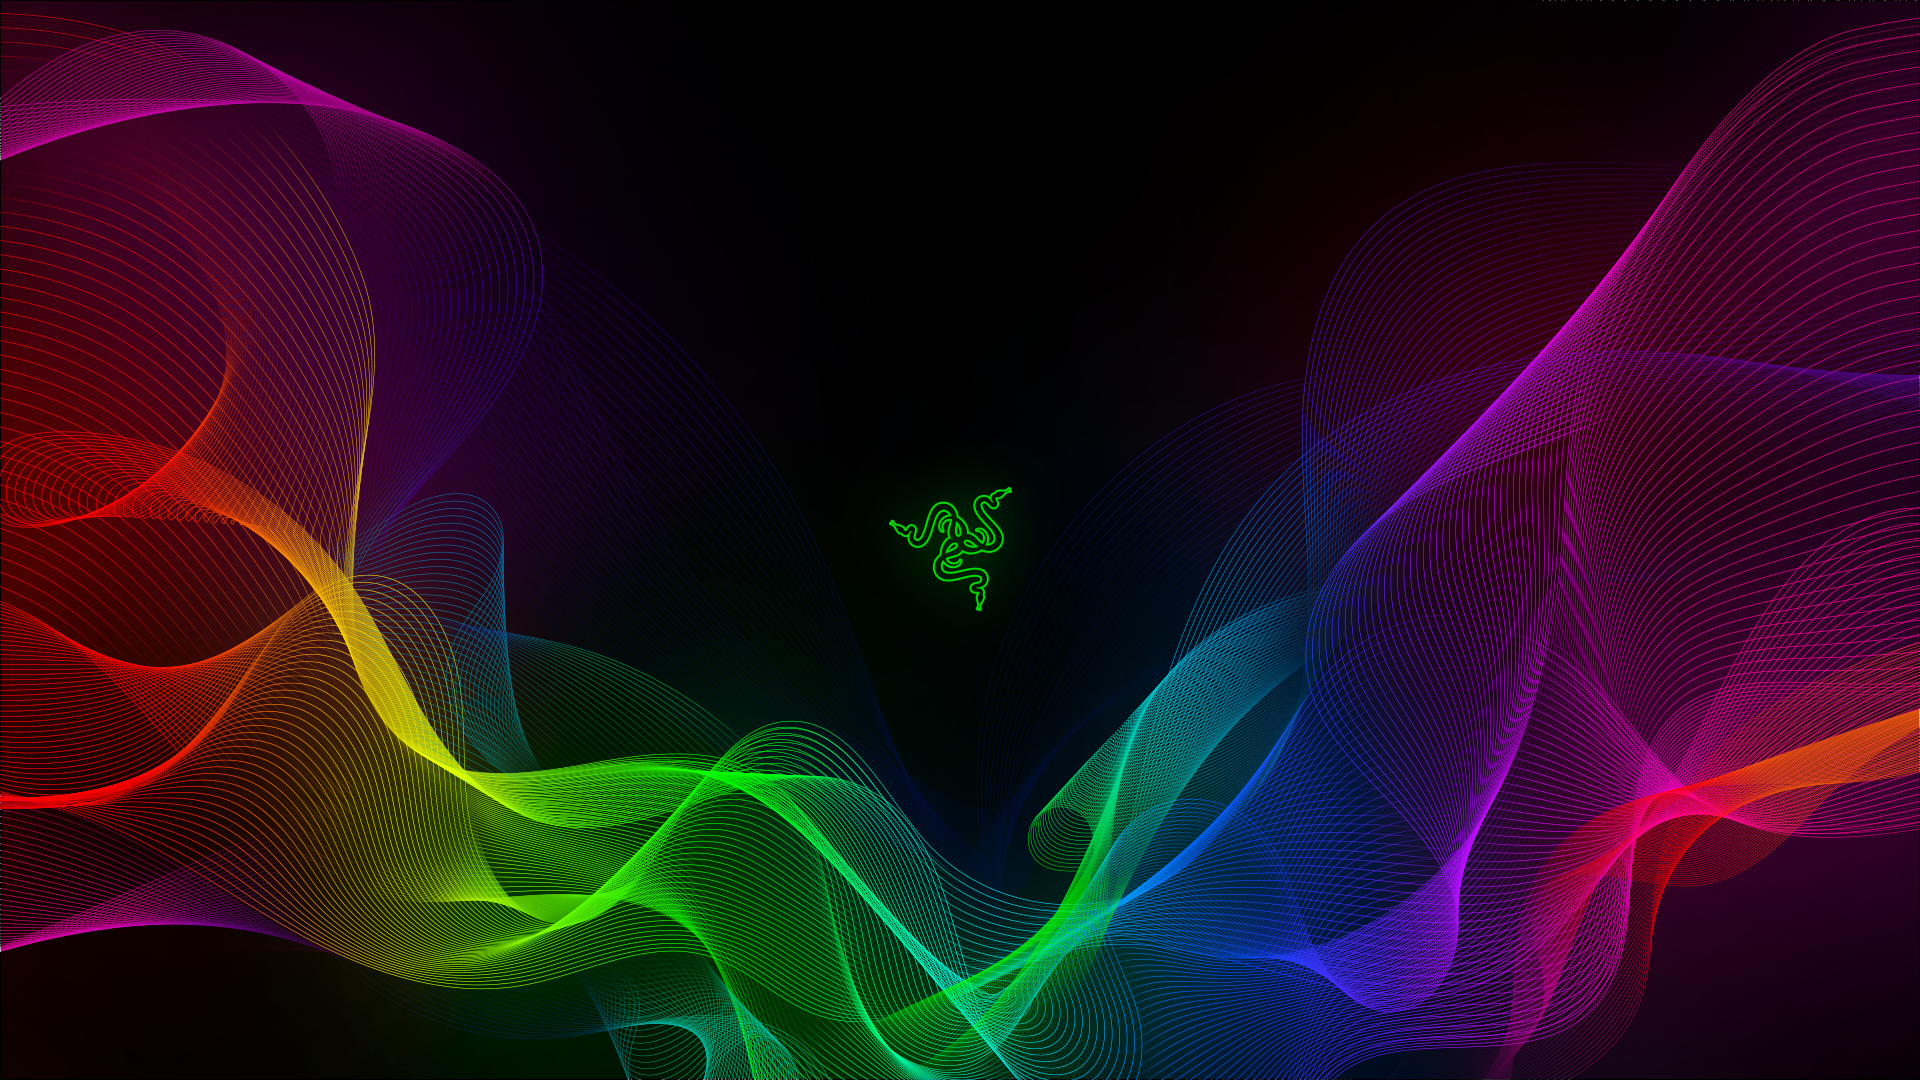 Download 1920x1080 Razer Abstract Waves Sync Wallpapers For Widescreen Wallpapermaiden In 2020 4k Wallpapers For Pc Live Wallpaper For Pc Wallpaper Pc